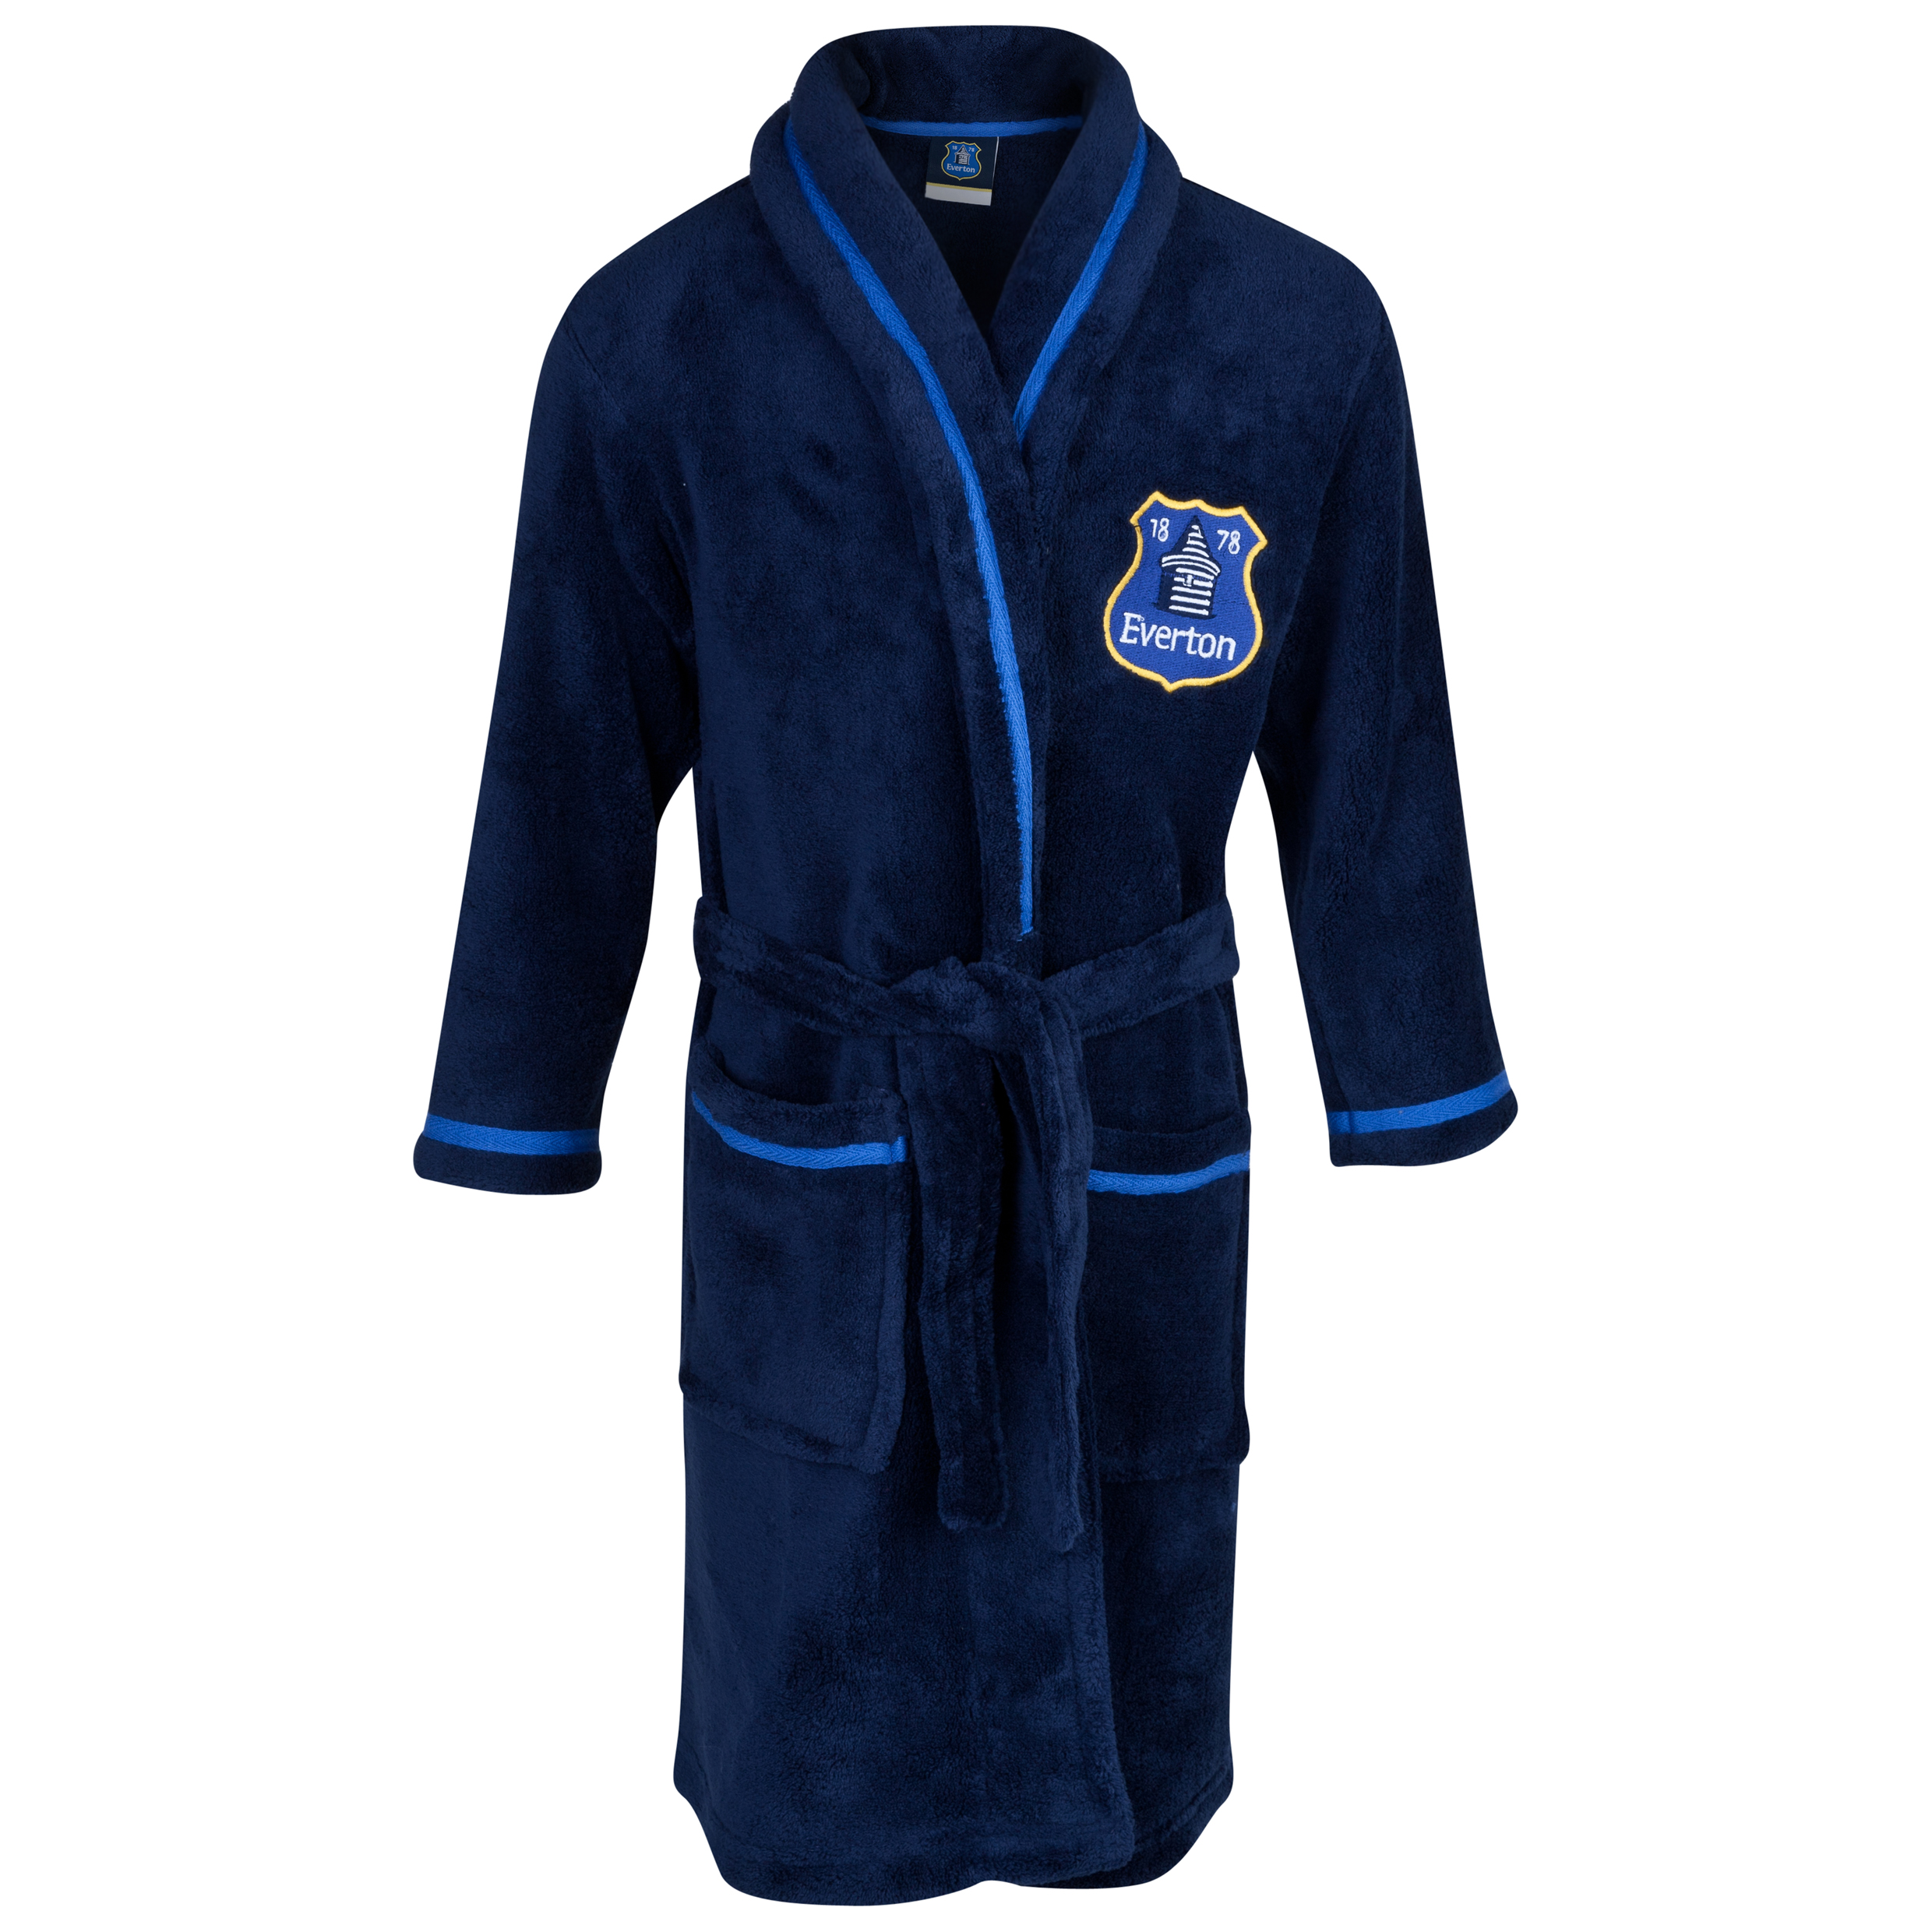 Everton Robe Boys Navy